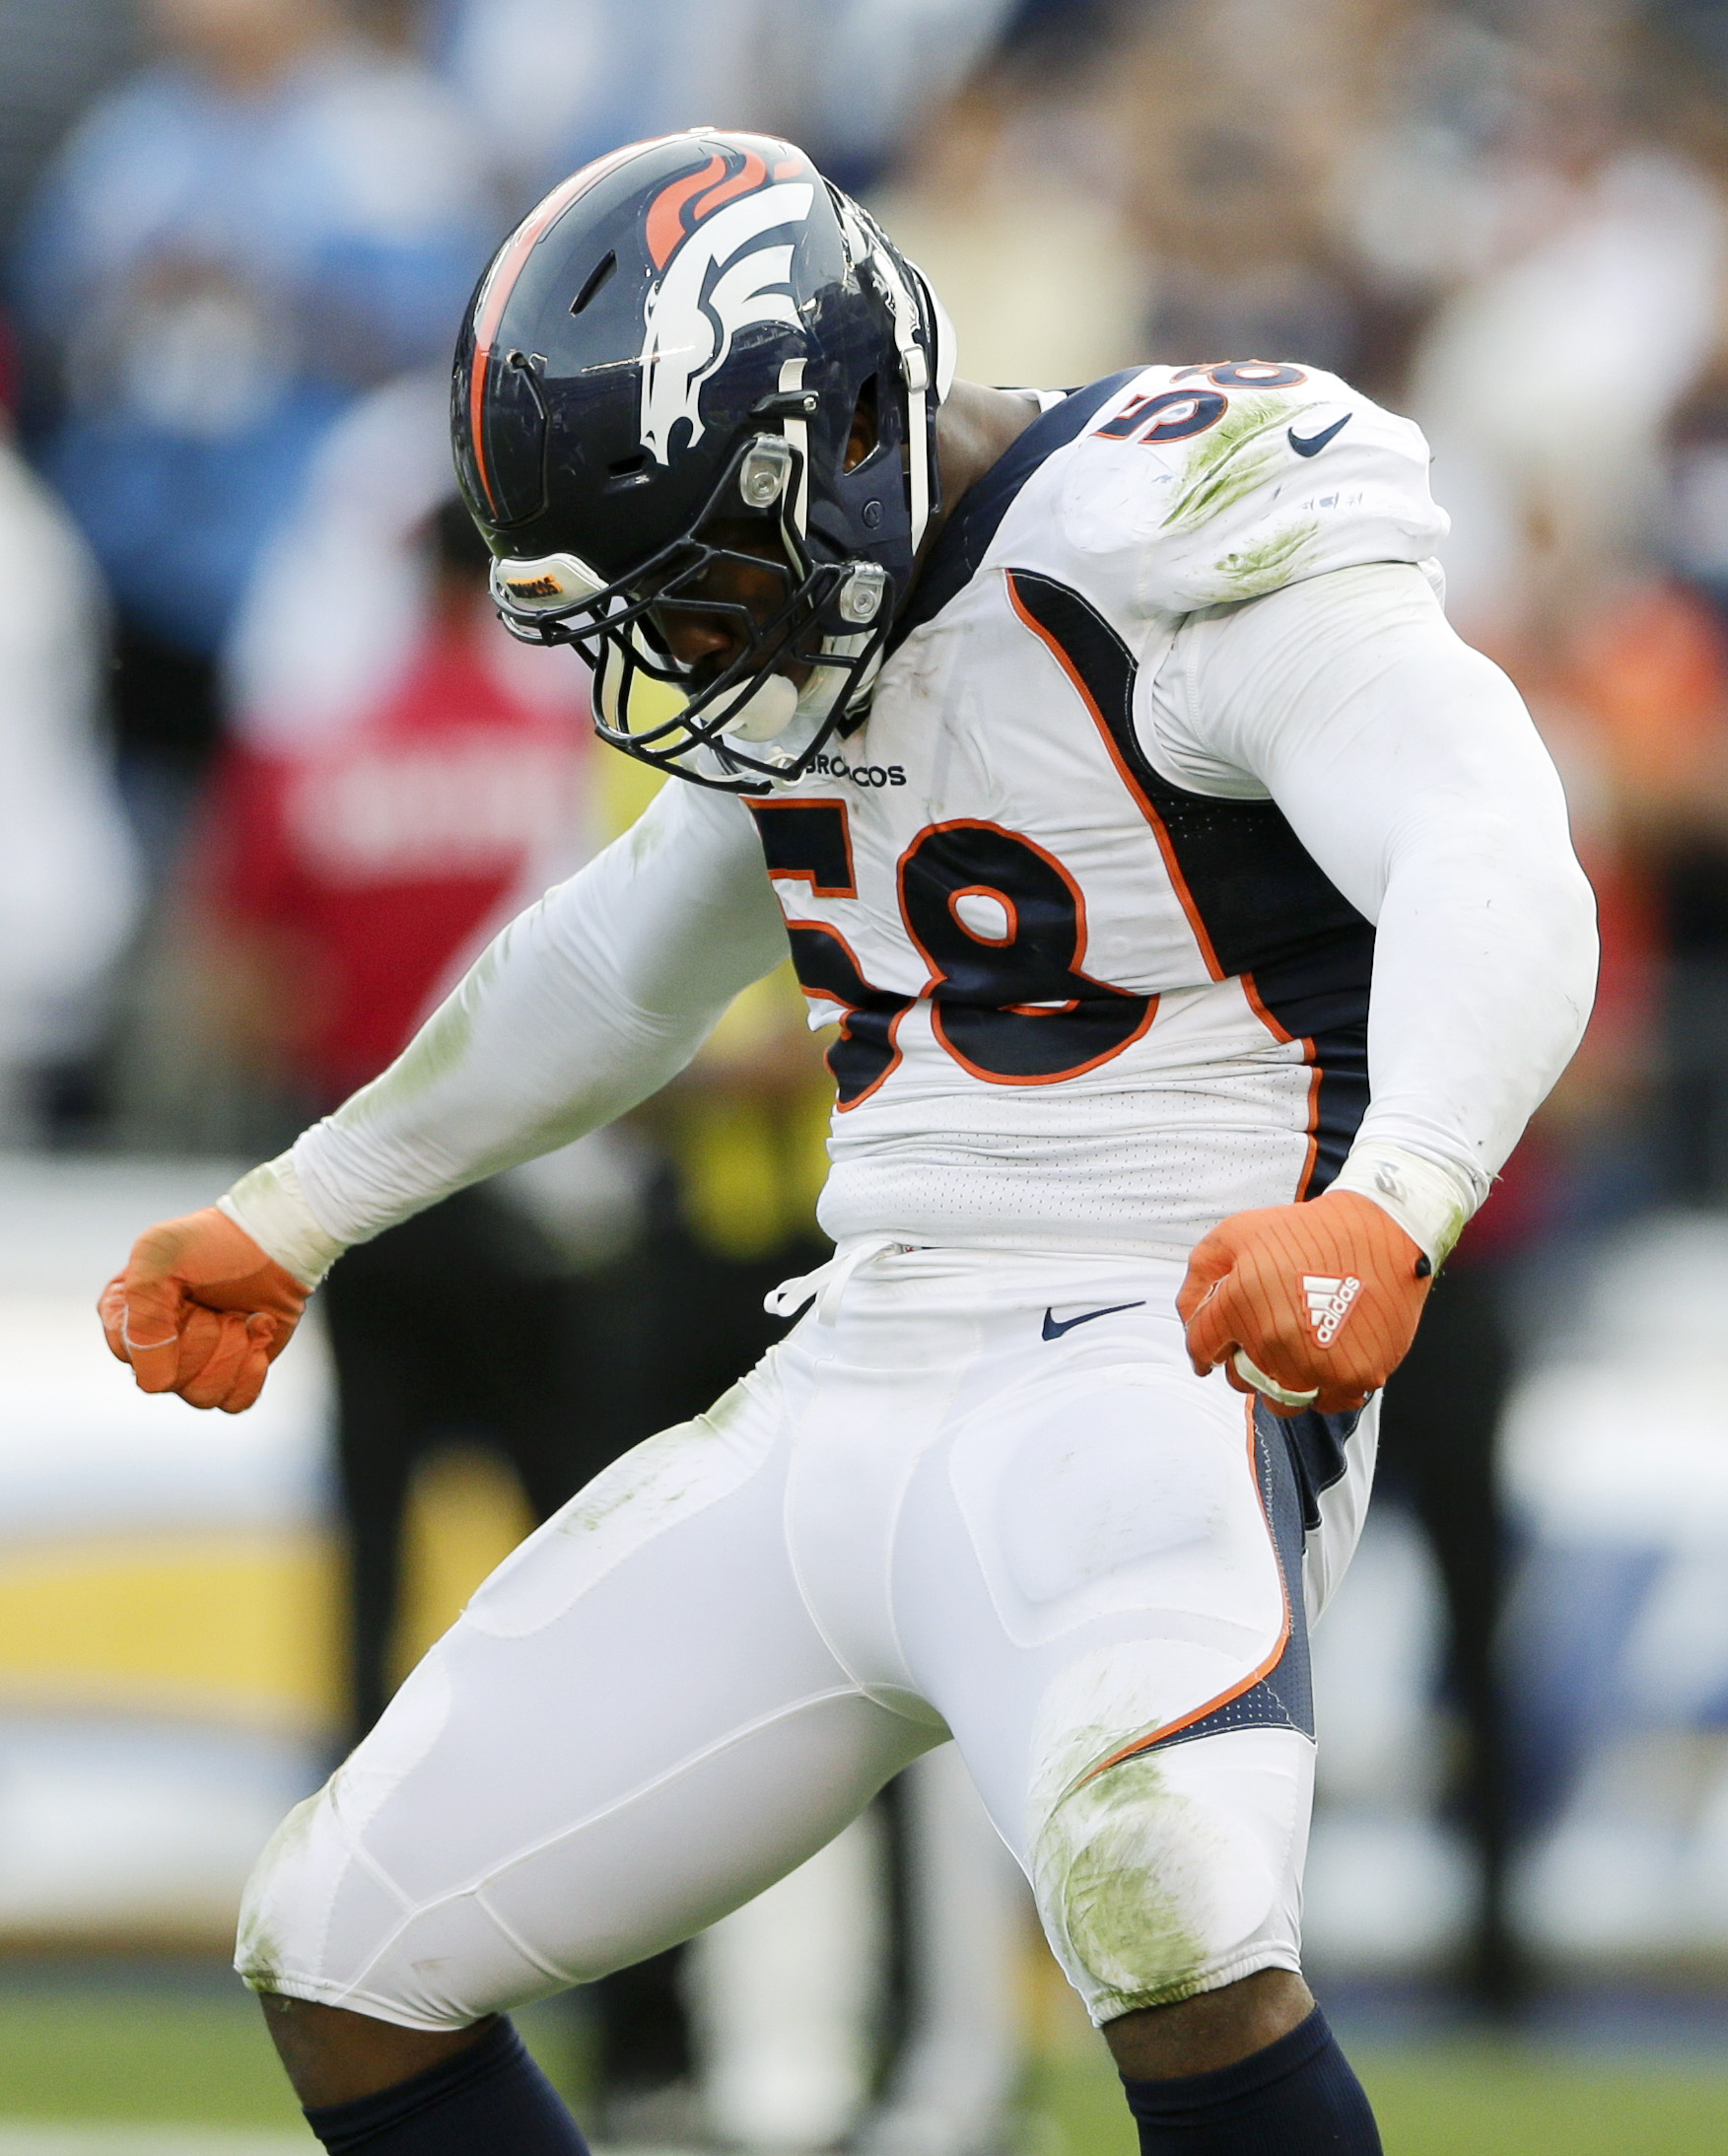 FILE - In this Sunday, Dec. 6, 2015, file photo, Denver Broncos outside linebacker Von Miller celebrates a sack against the San Diego Chargers during the second half of an NFL football game in San Diego. Miller says that every sack that he registers merit